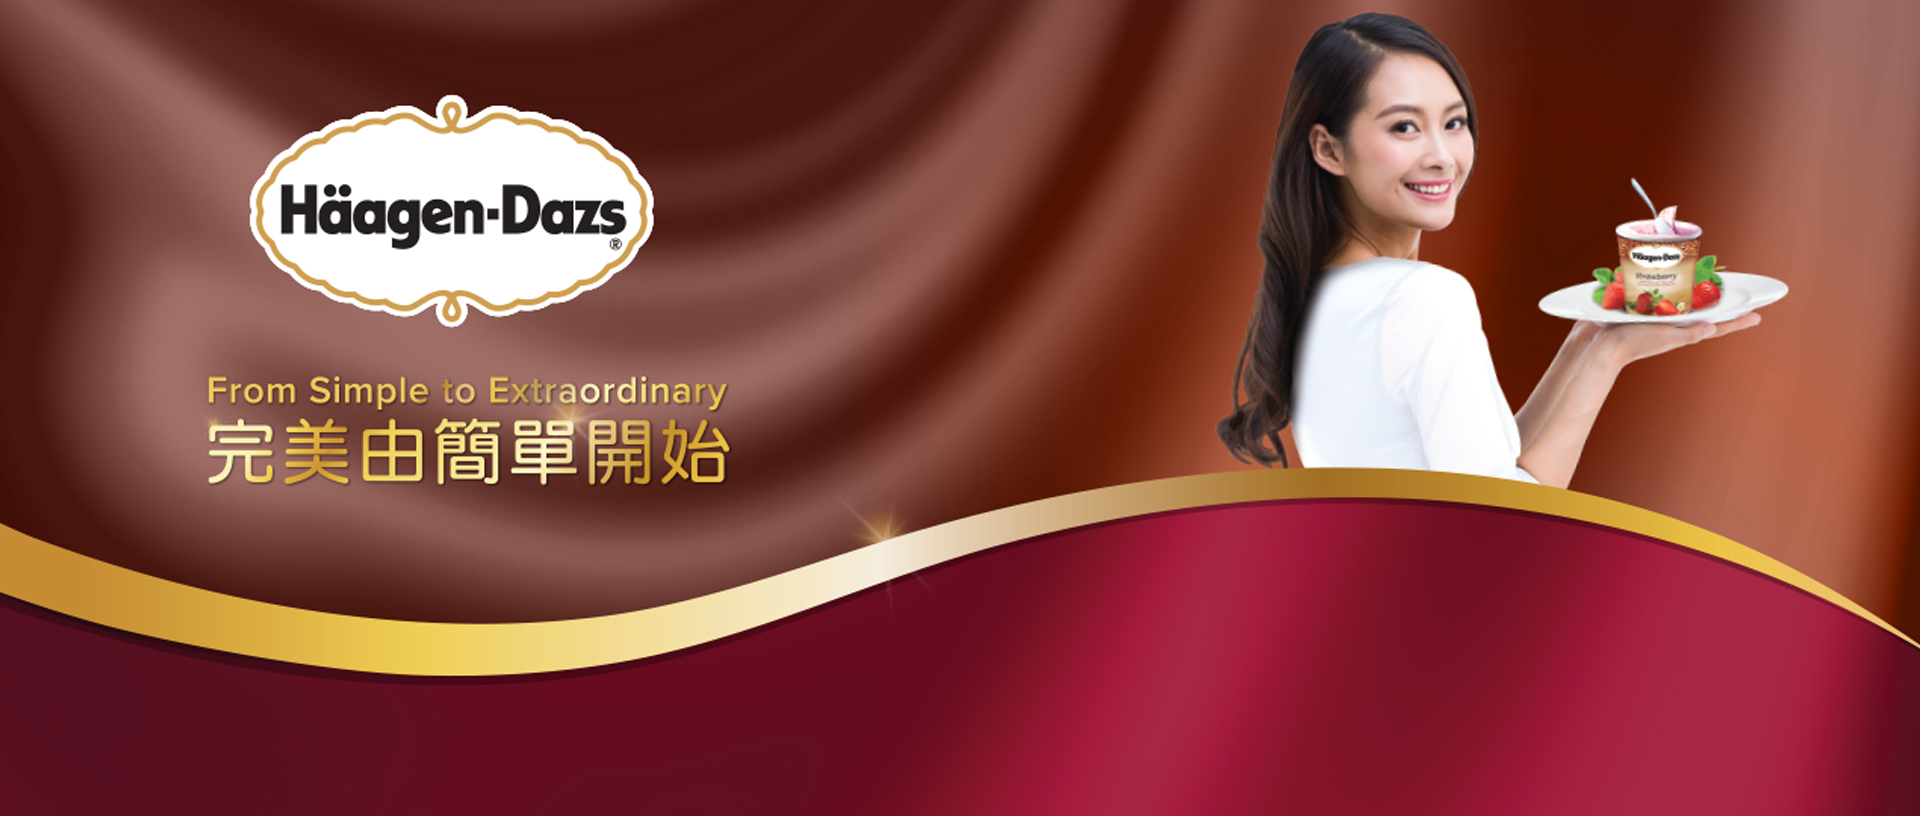 Haagen-Dazs-Chinese-Canadian-Ethnic-Campaign